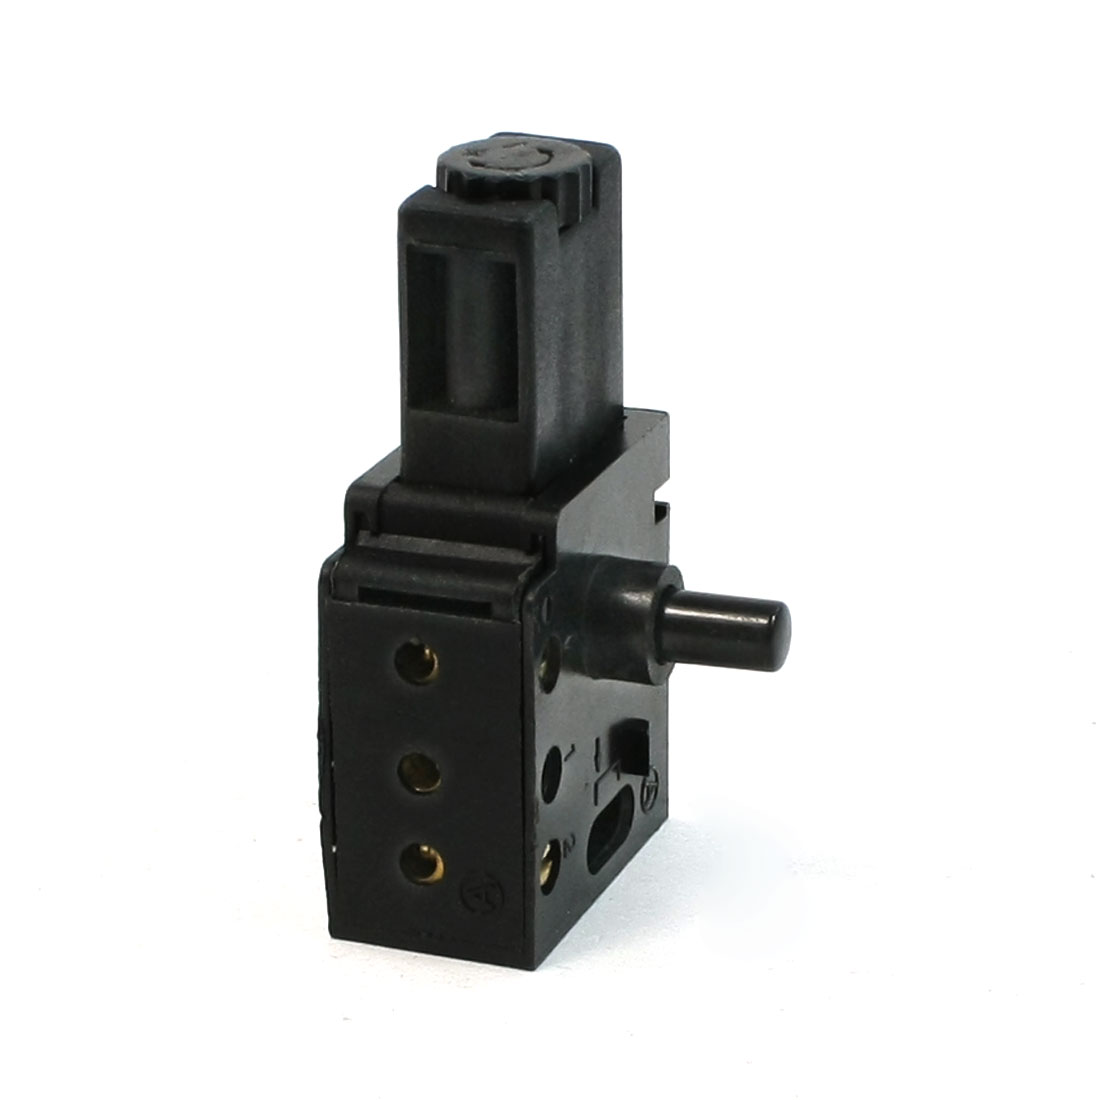 AC 220V 6-12A Latching Speed Governing Button Switch for Hitachi 10VA Drill